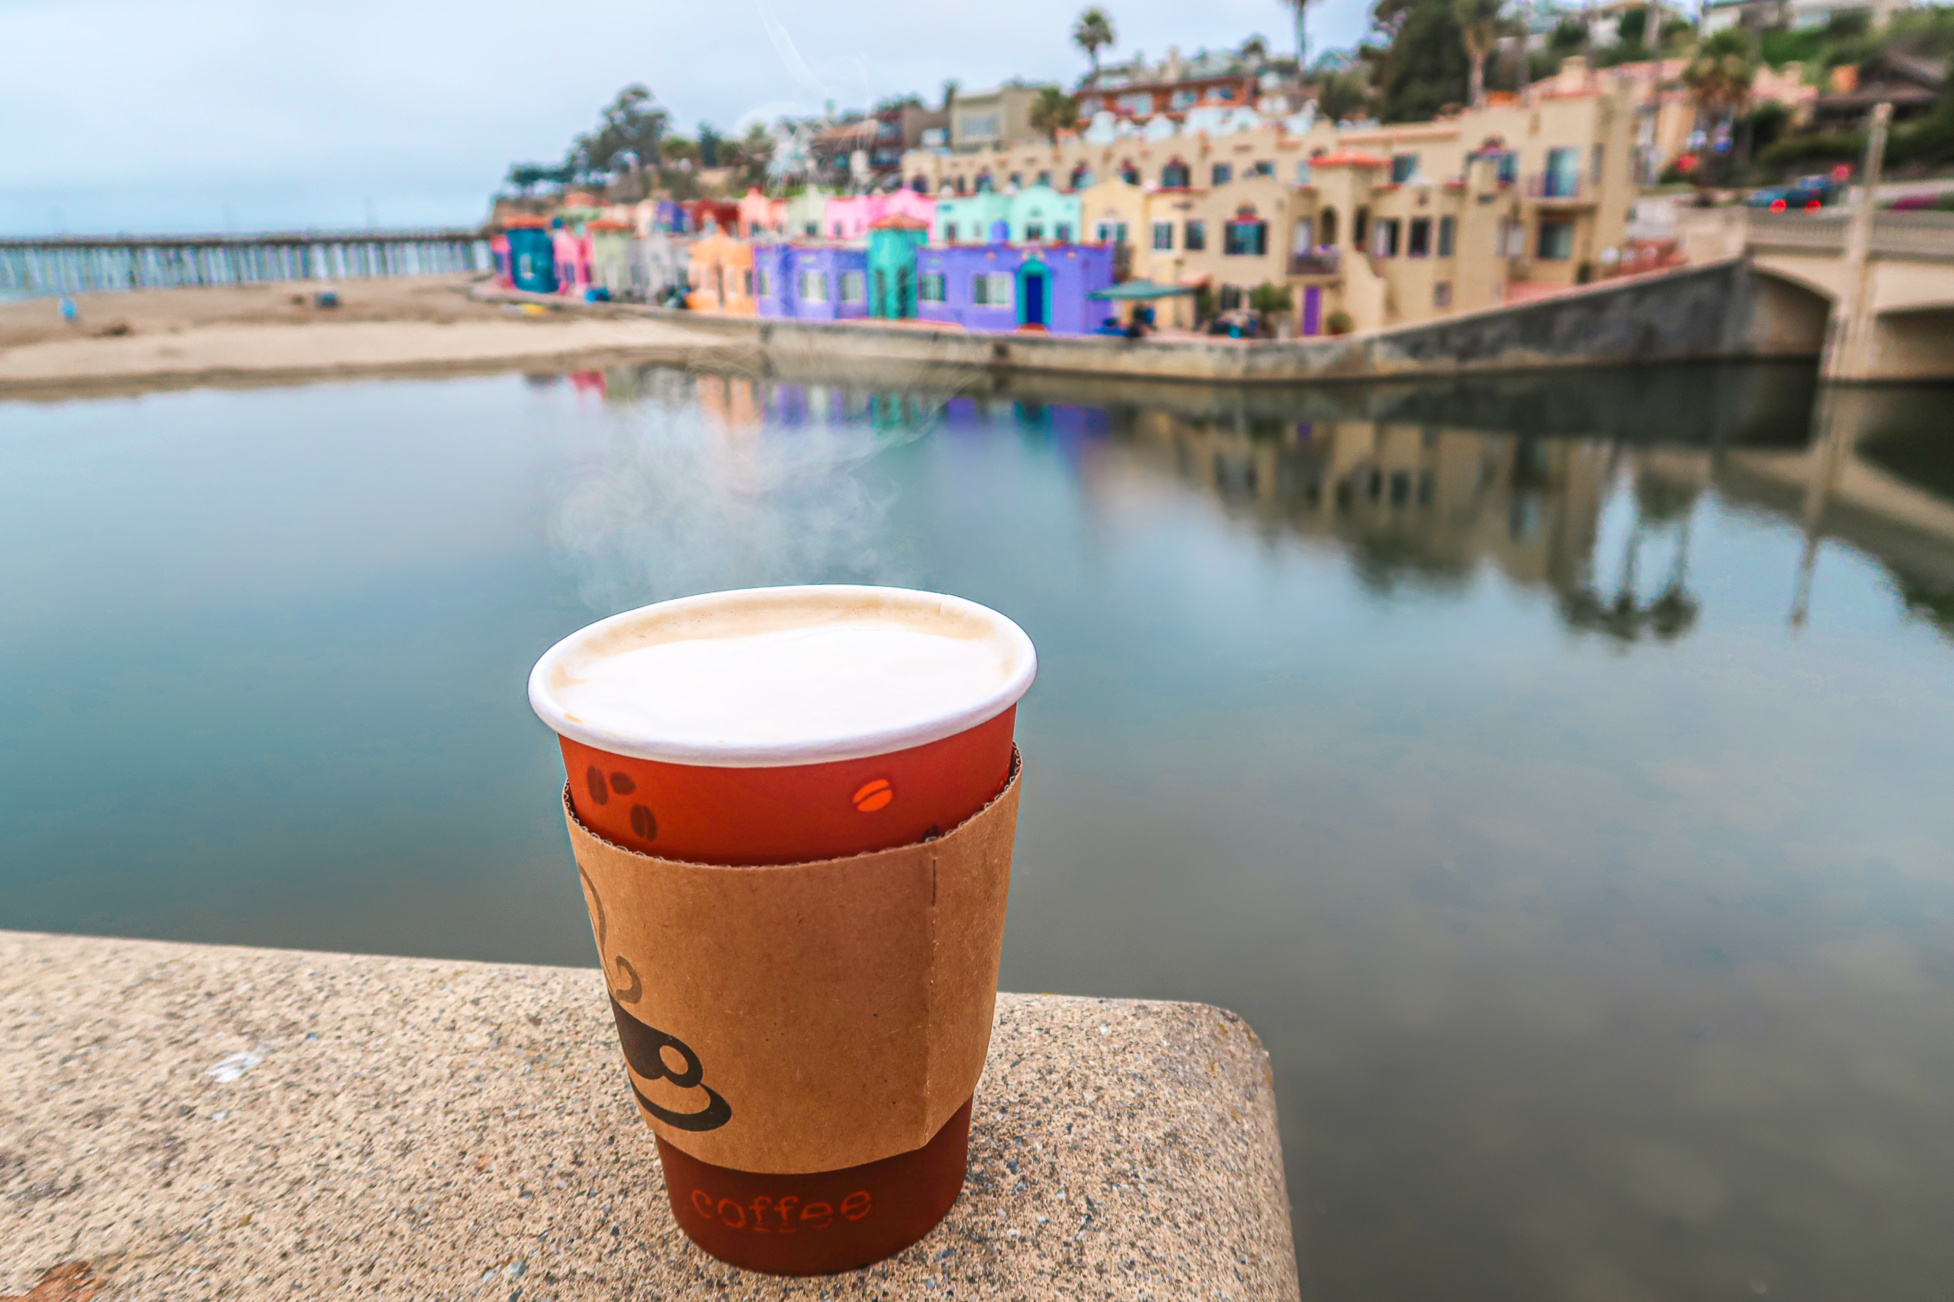 mr toots coffee, Santa Cruz California, travel, coast of California, Pacific coast highway, high way one, travel the coast, cali, travel guide, where to stop, itinerary